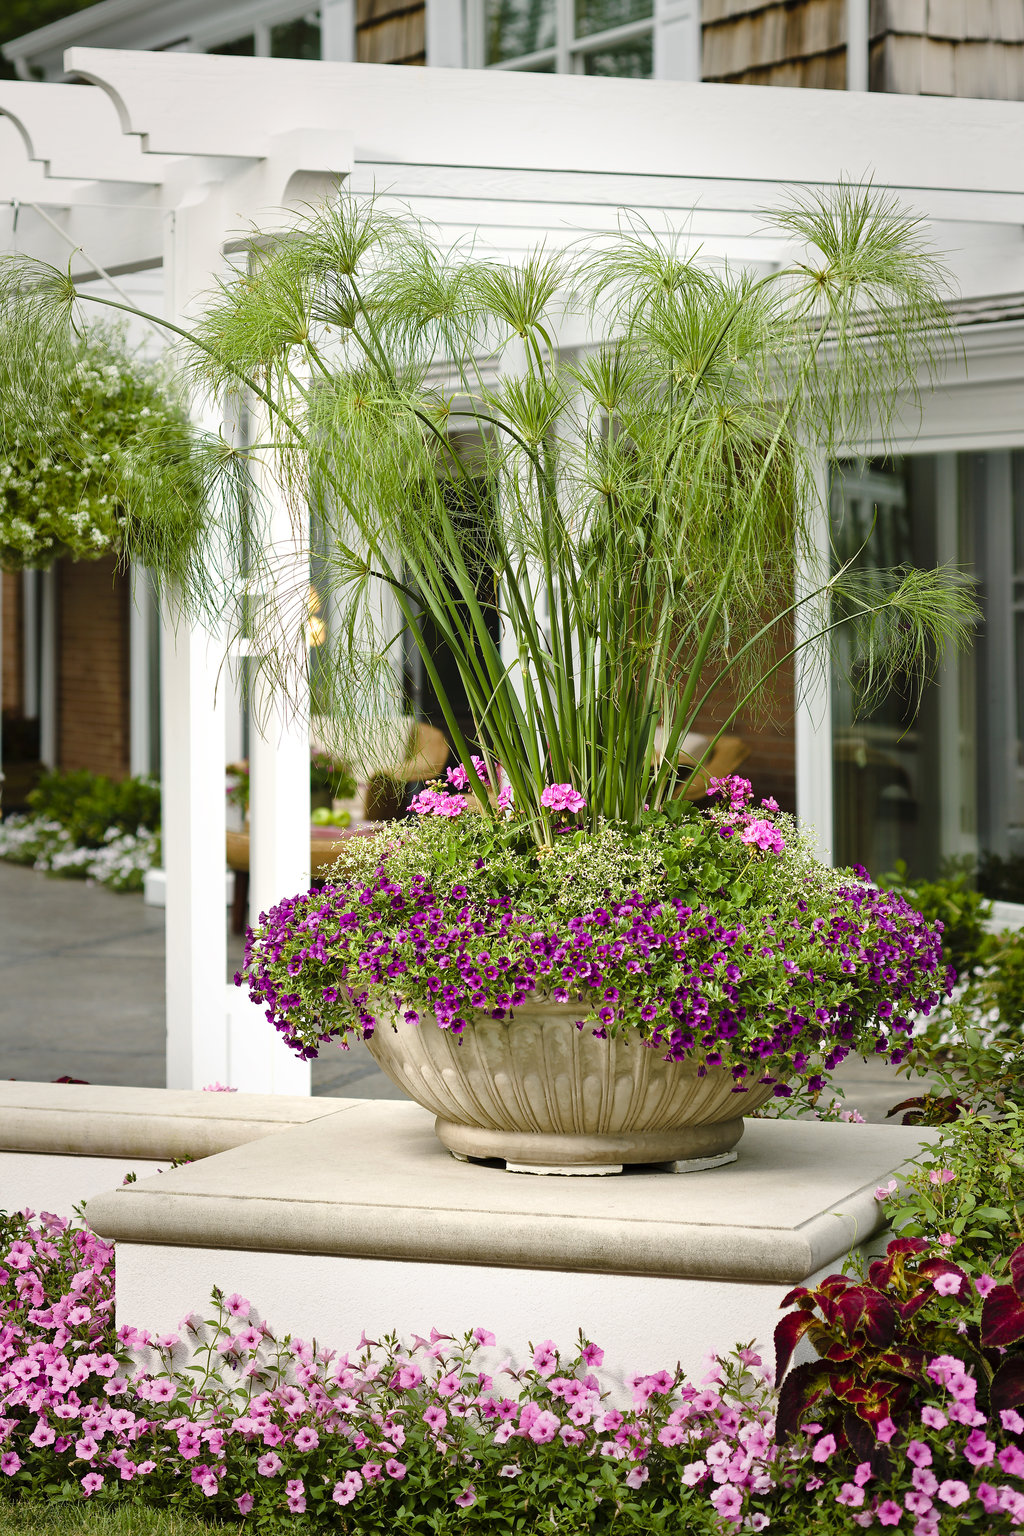 Graceful Grasses® King Tut™ Combo, Photo courtesy Proven Winners, www.provenwinners.com